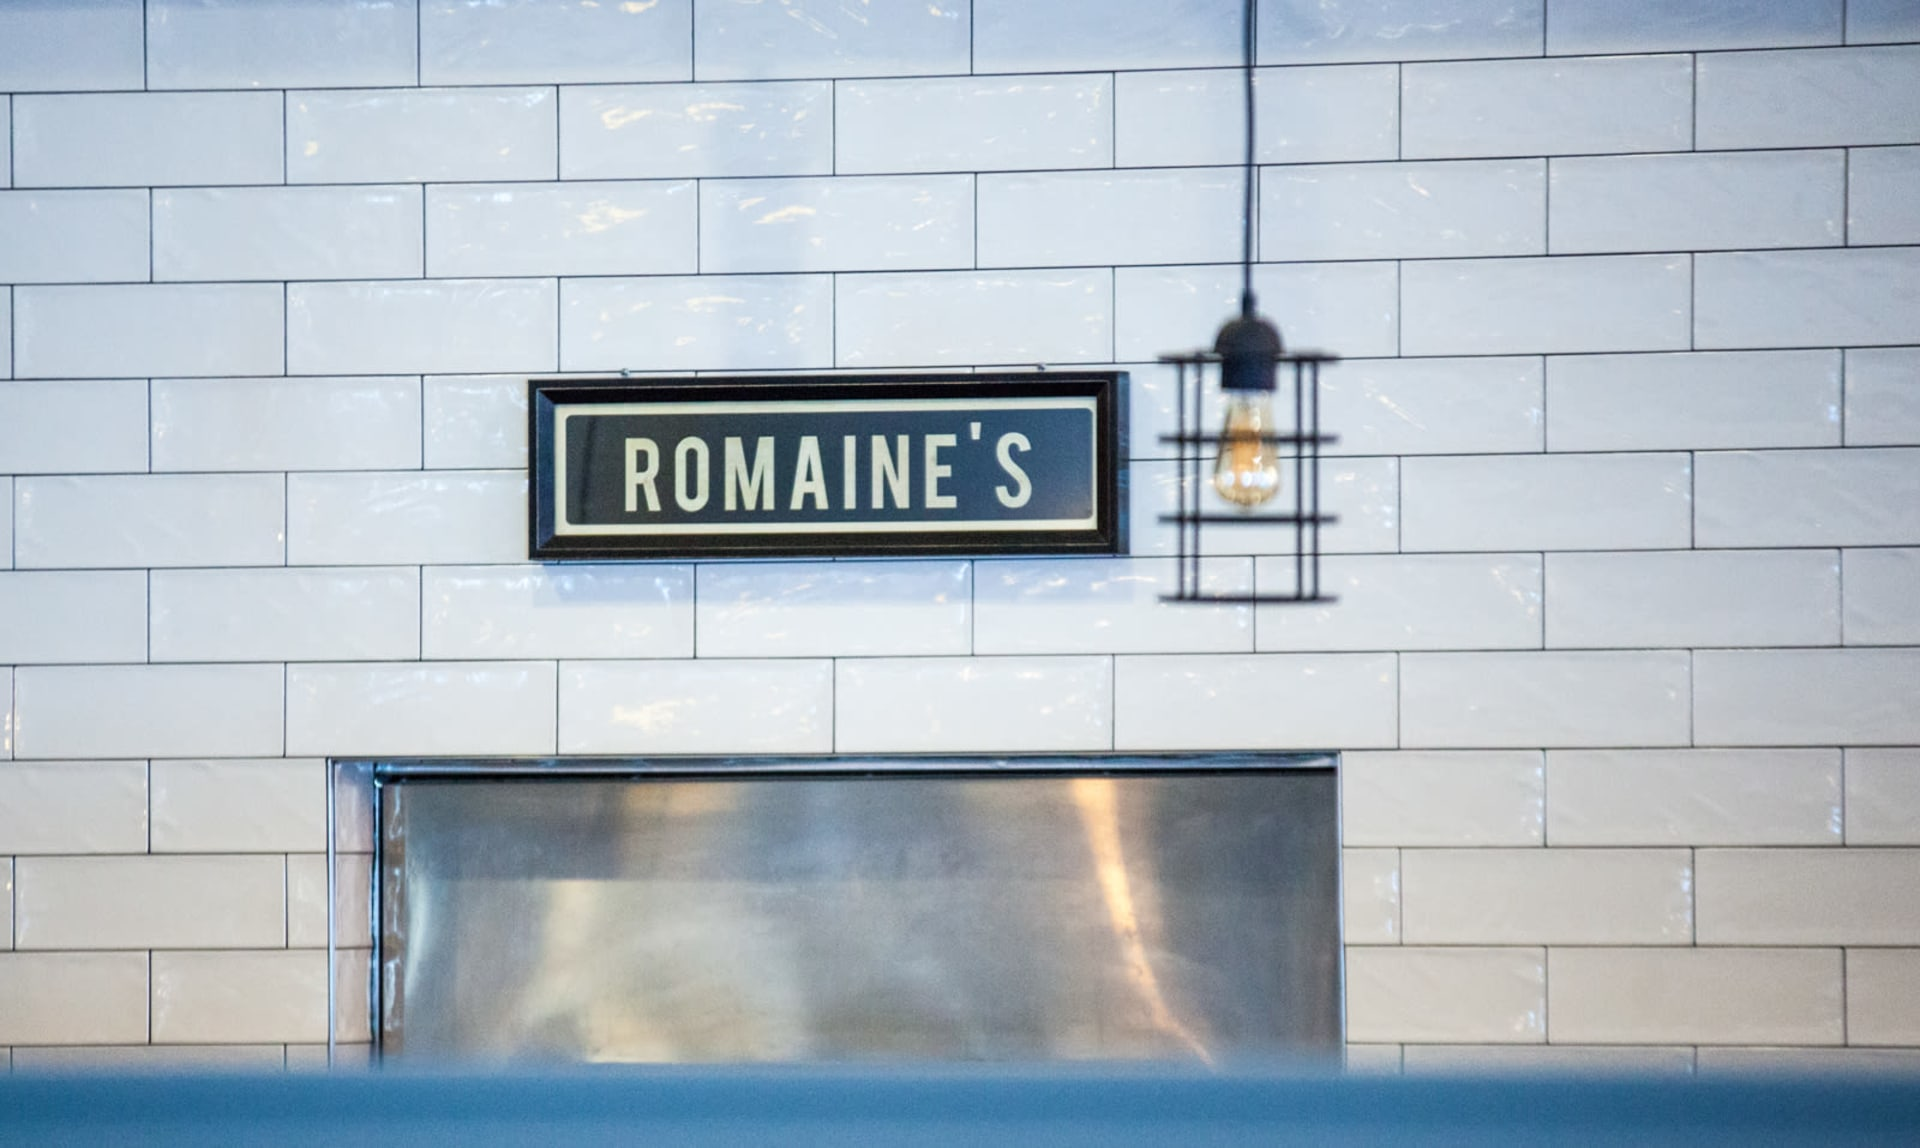 Welcome to Romaine's